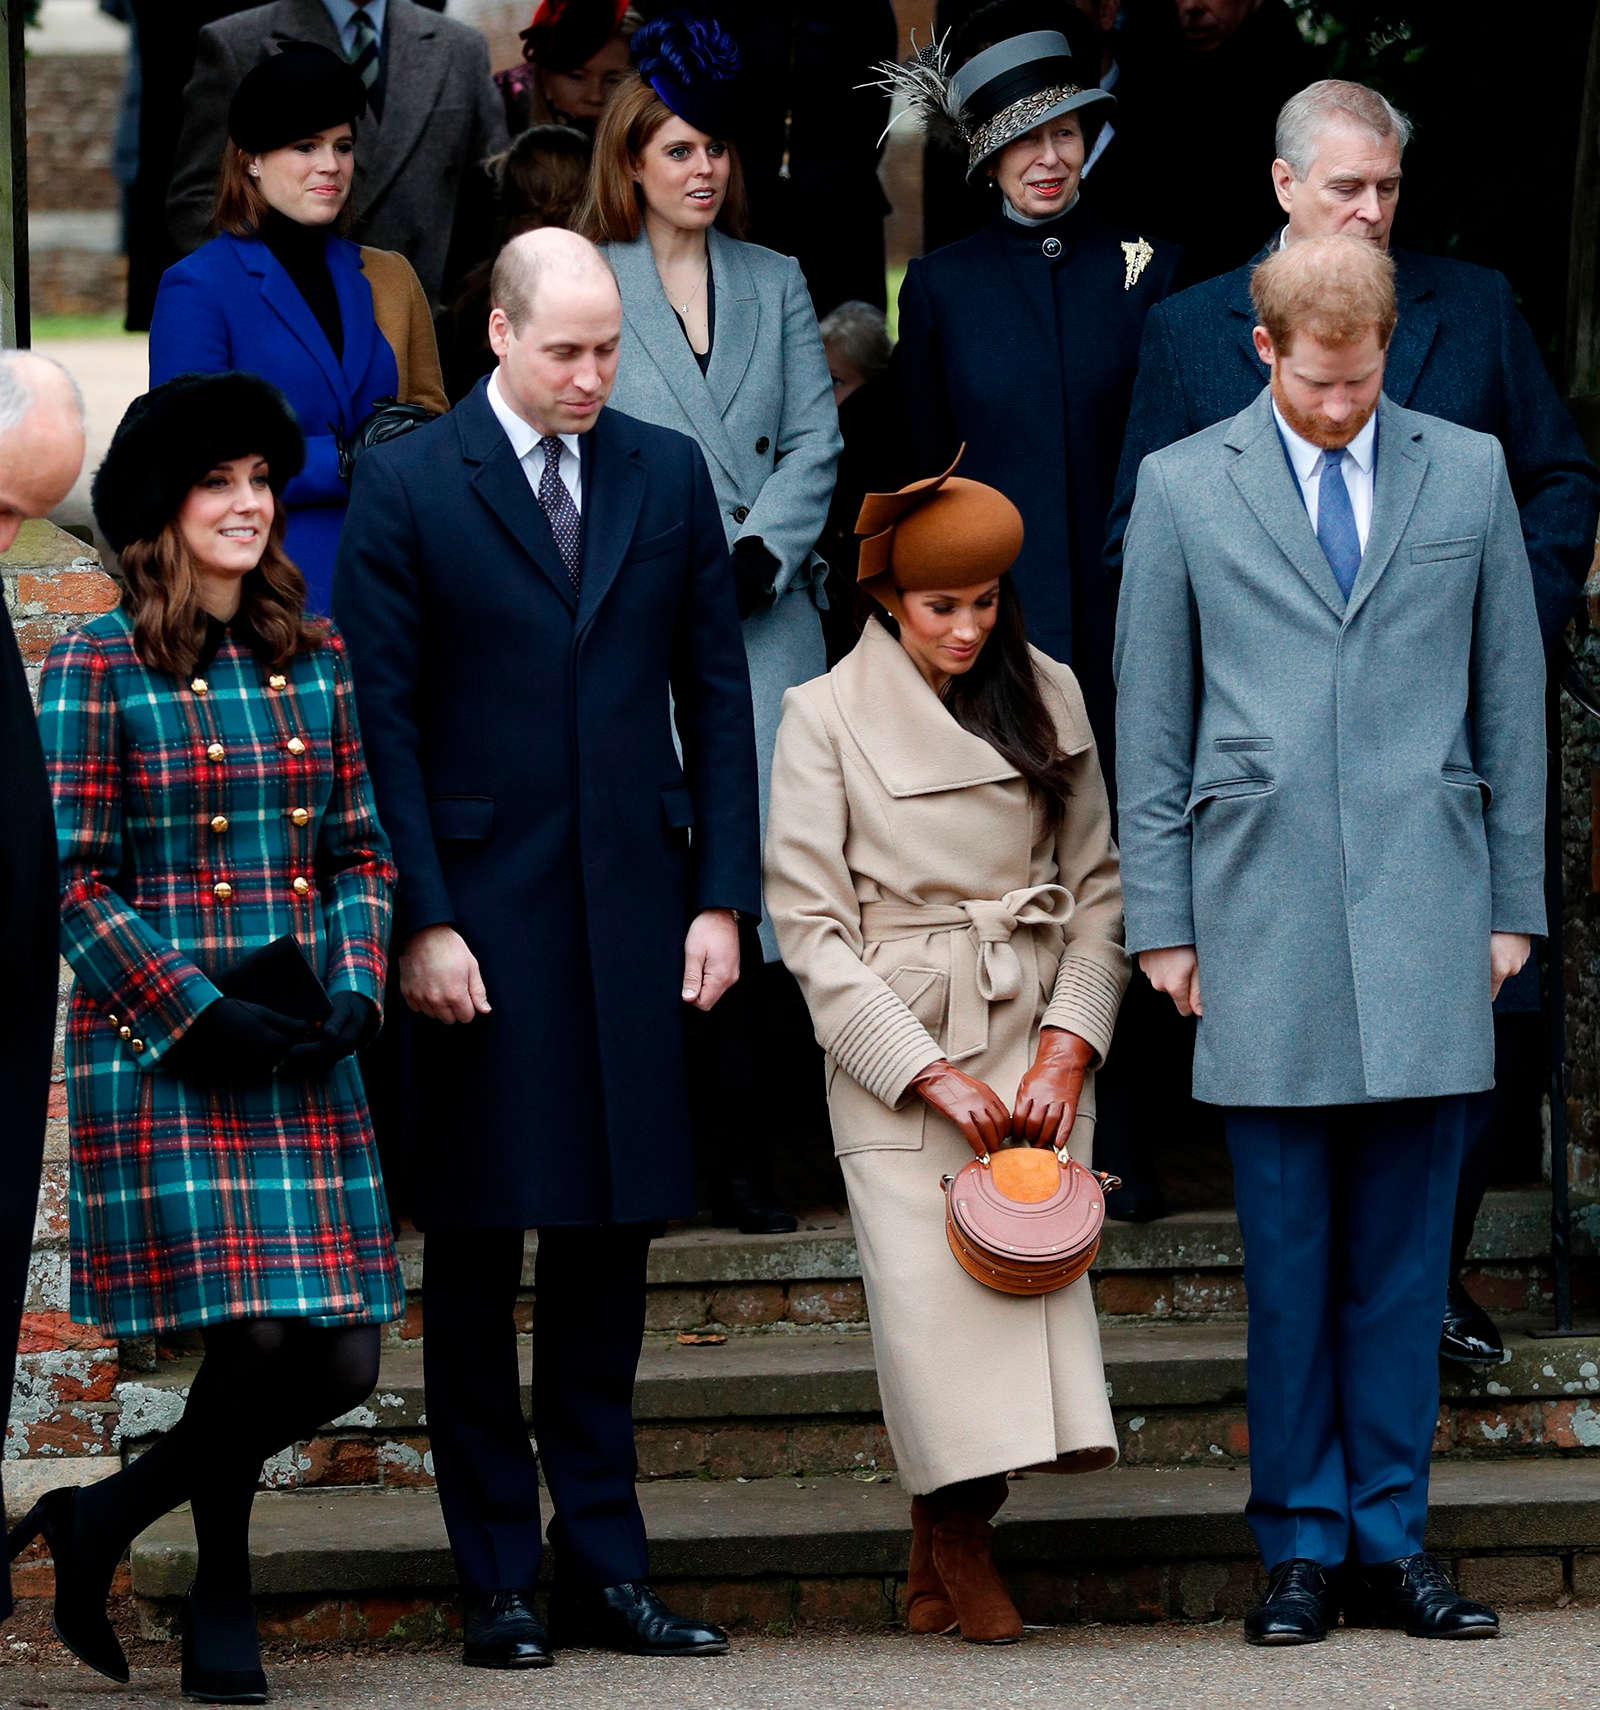 Meghan Markle curtsies as she sees off Britain's Queen Elizabeth II leaving after the Royal Family's traditional Christmas Day church service at St Mary Magdalene Church in Sandringham, Norfolk, eastern England, on December 25, 2017.